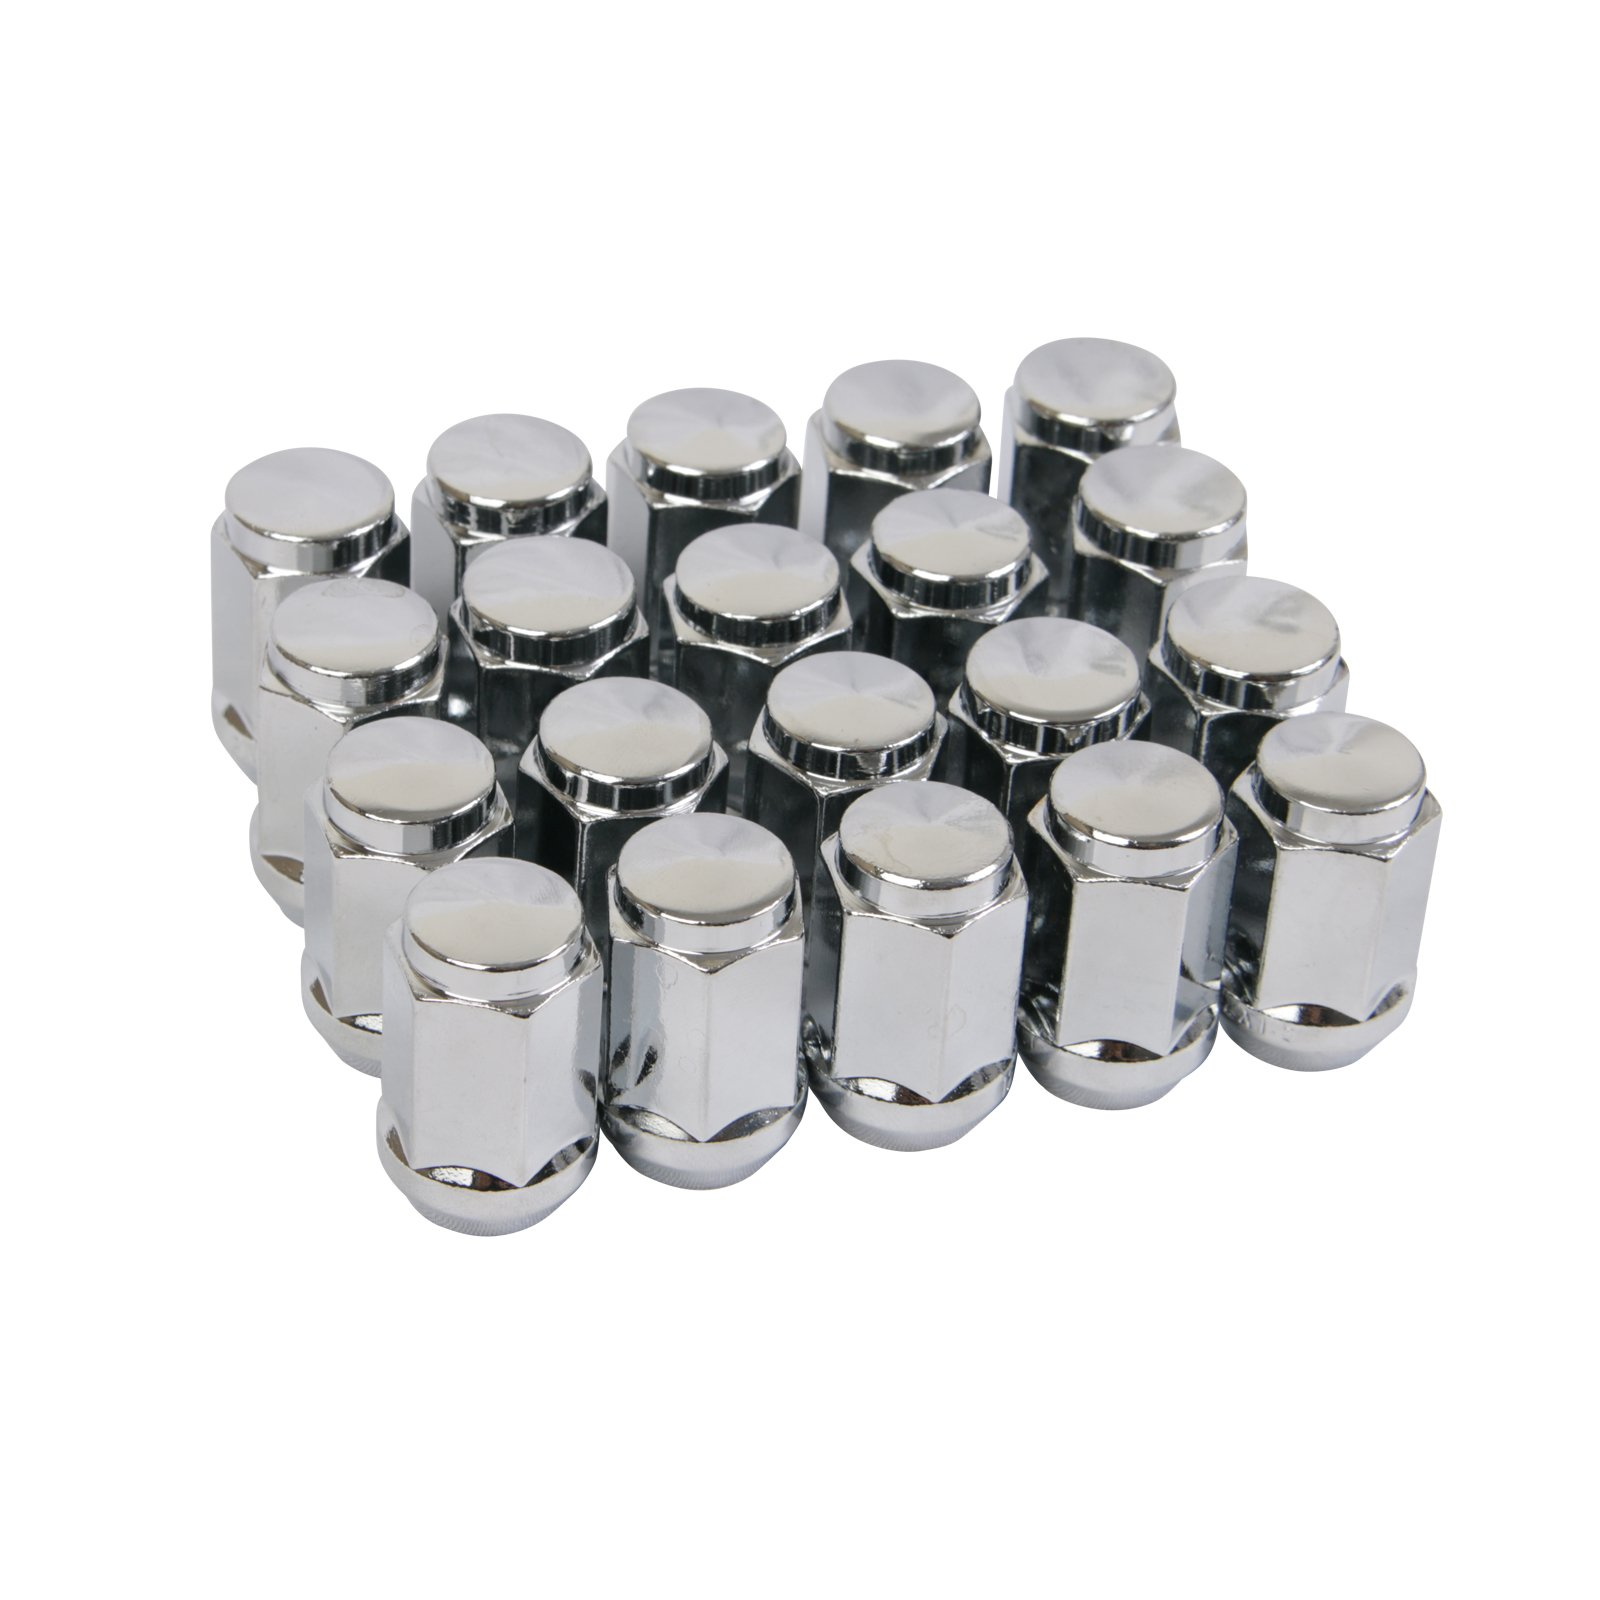 "20pc Chrome Silver Bulge Lug Nuts 1/2-20 Thread Size - Conical Cone Taper Acorn Seat Closed End - 1.4"" Length - Installs with 19mm or 3/4 Hex Socket - for Jeep Cherokee Wrangler Liberty + More"